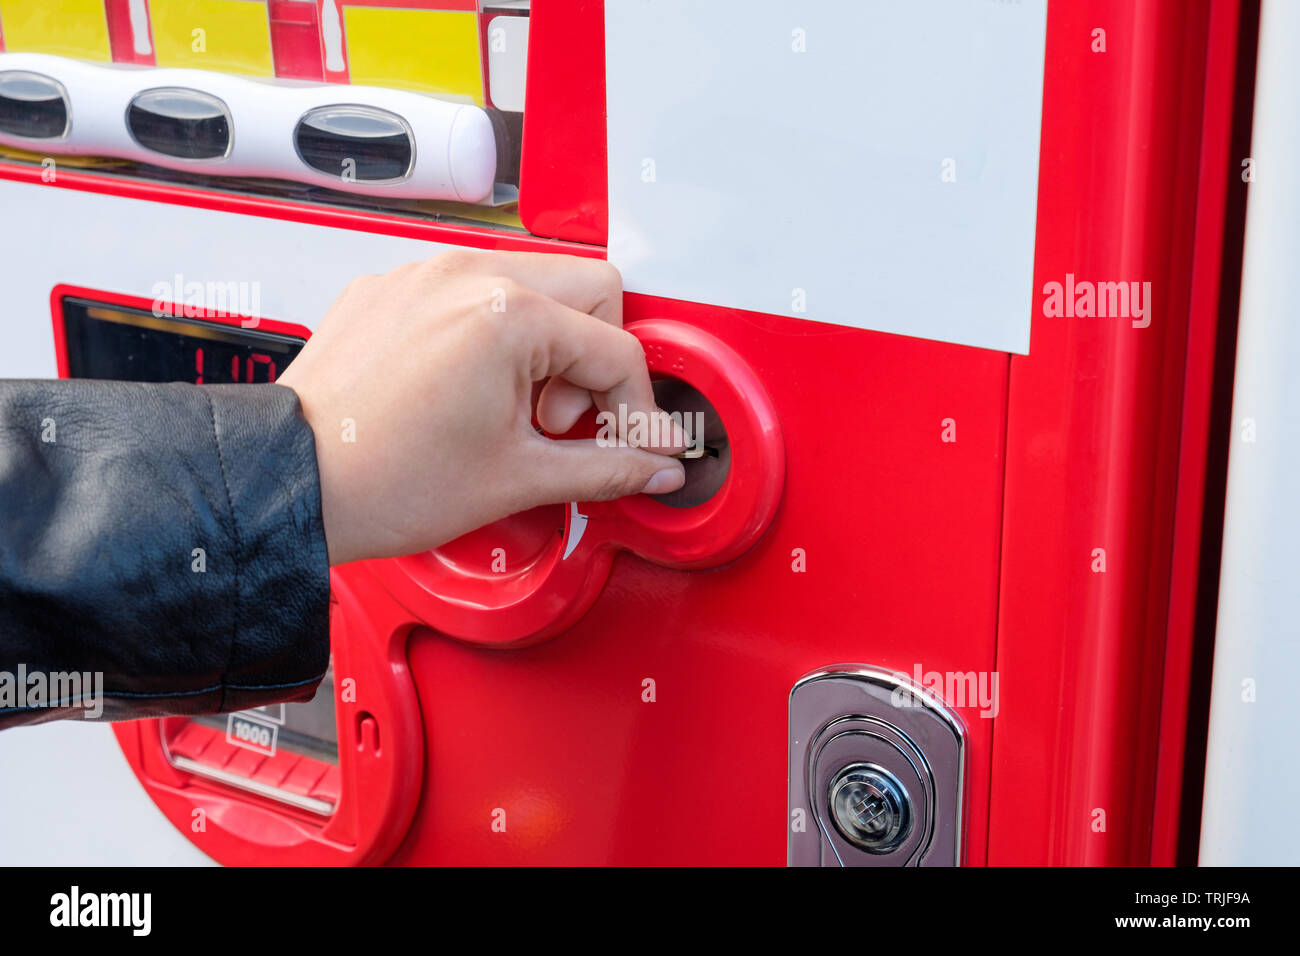 Tourist hand inserting coin with red water vending machine - Stock Image